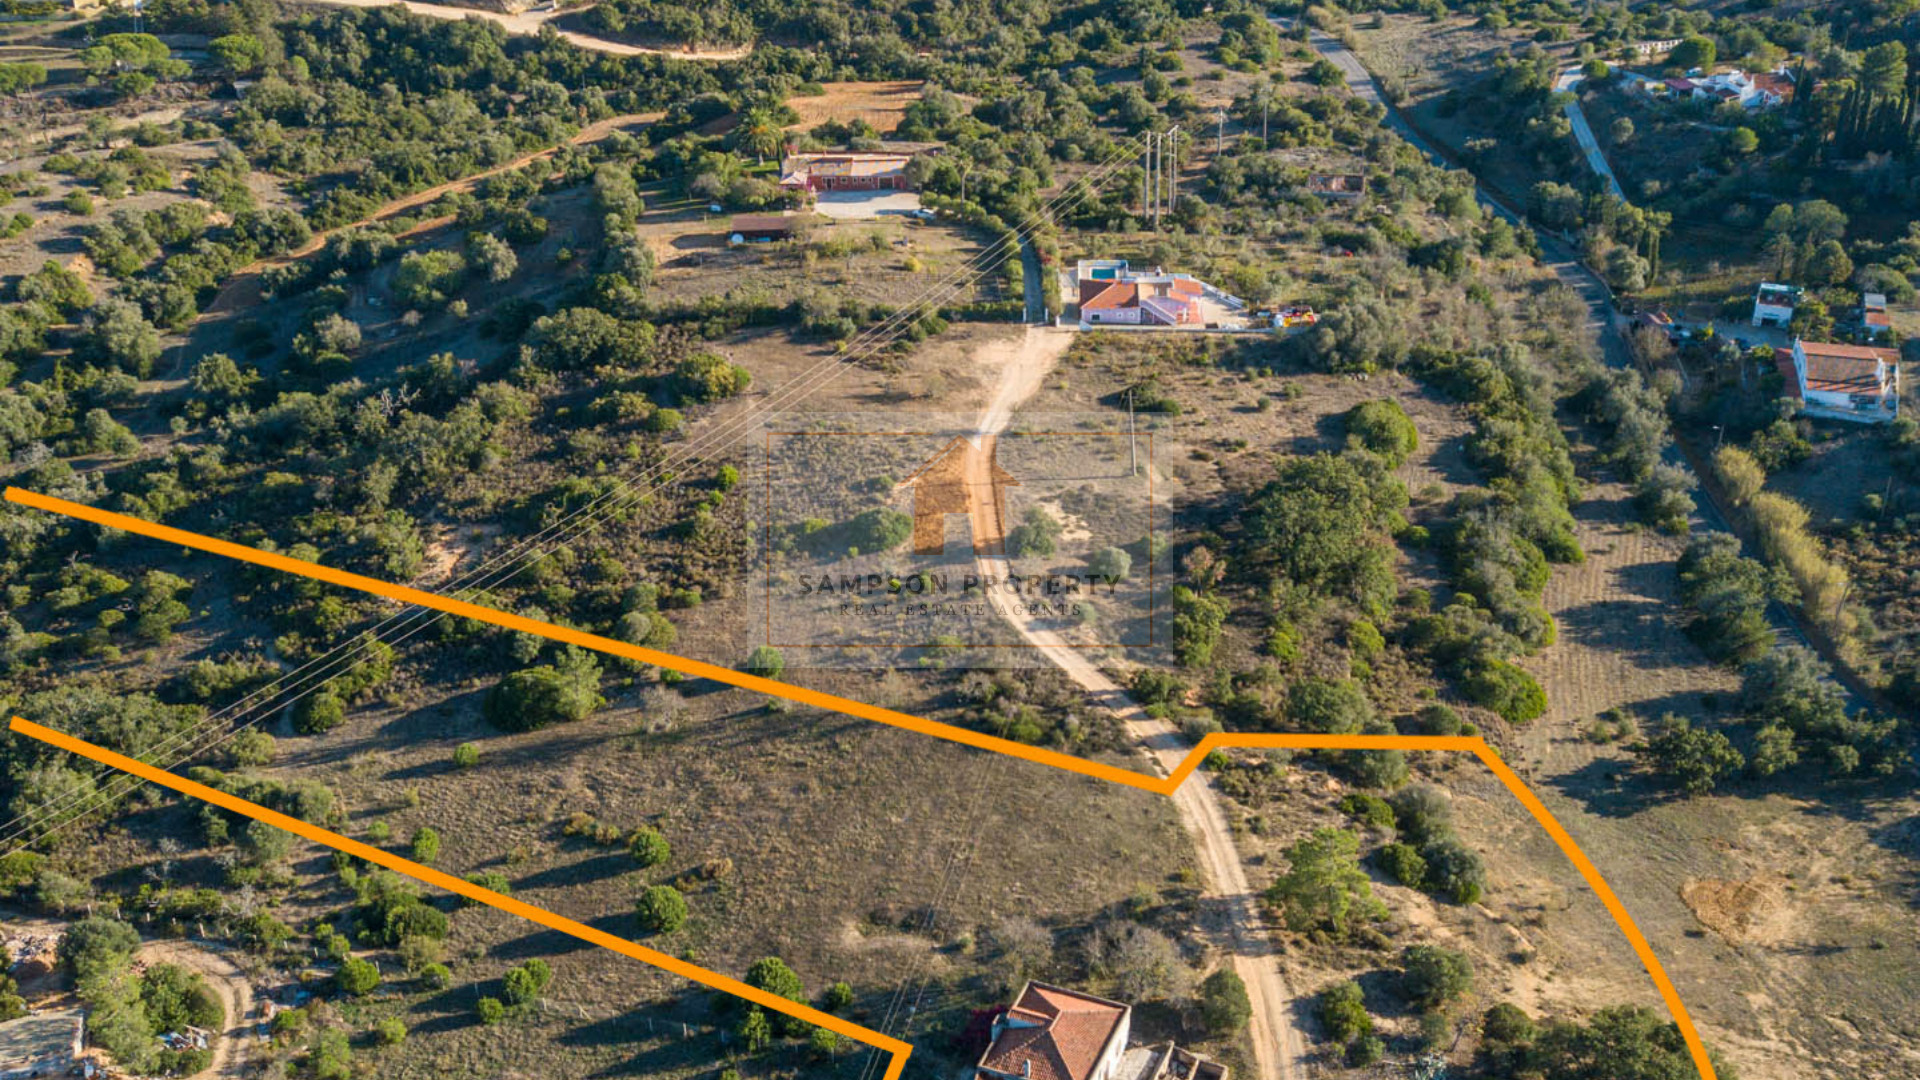 For sale, large building plot with sea views, close to Carvoeiro